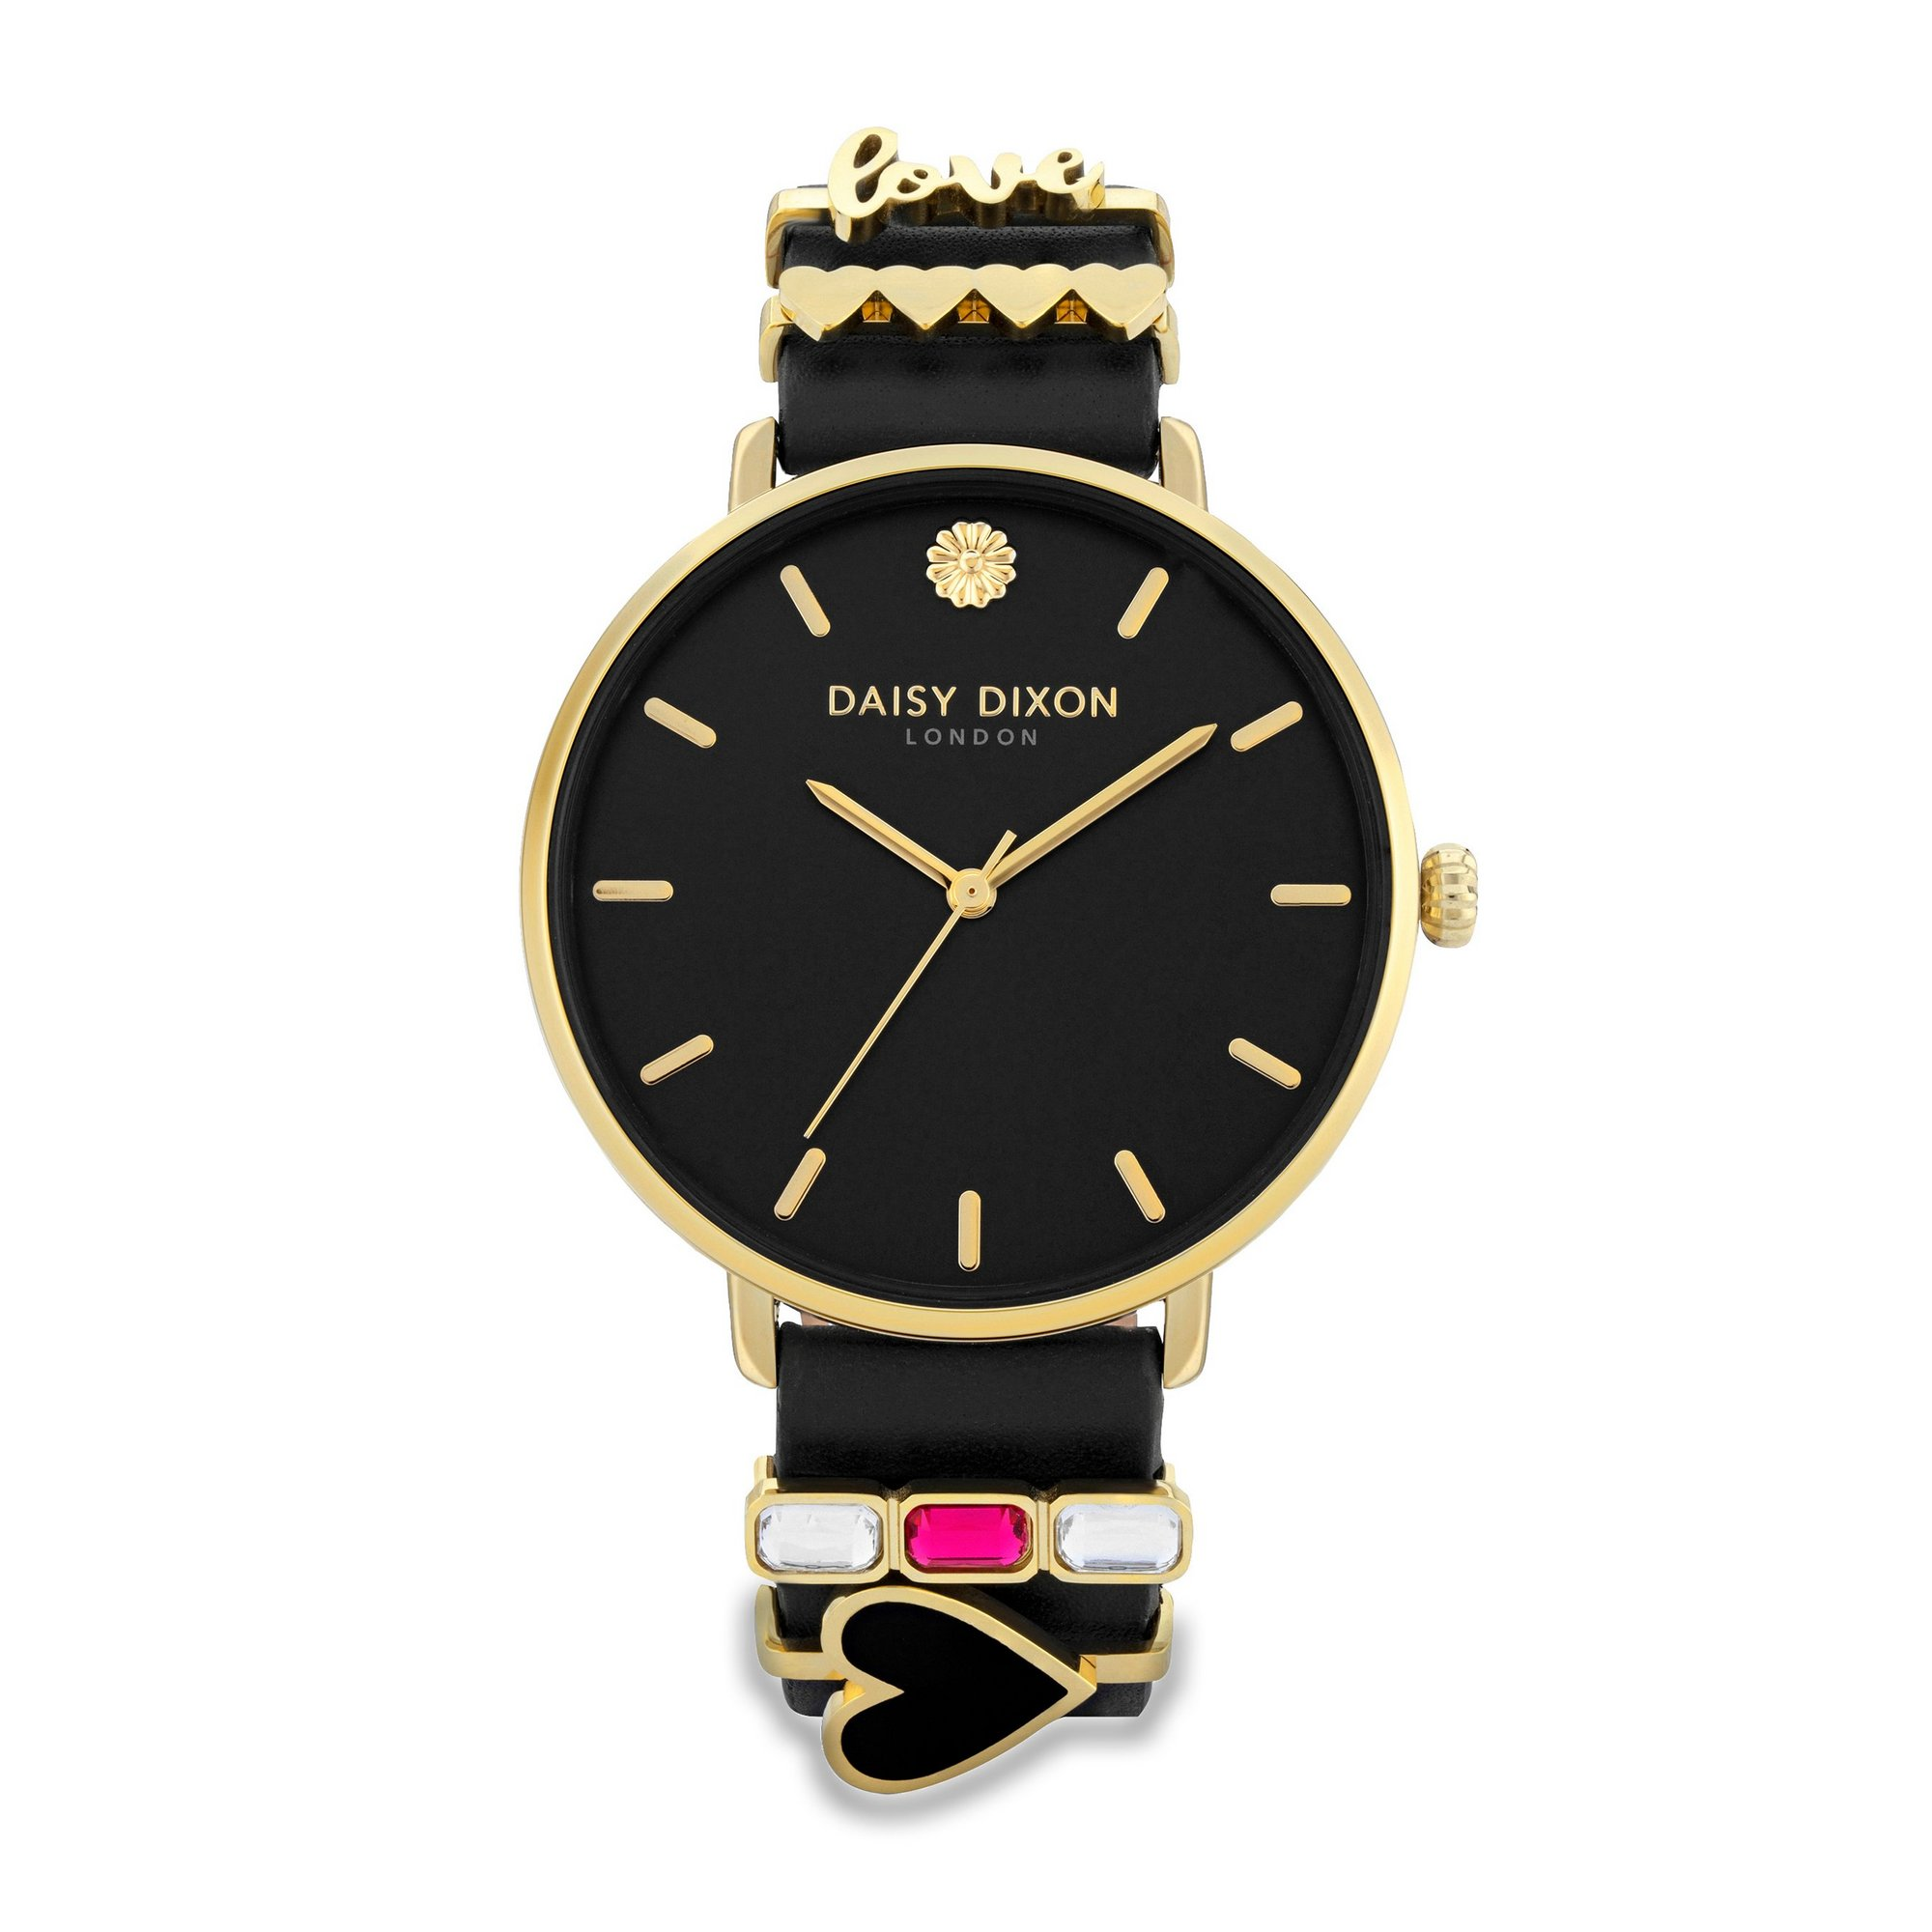 Image of Daisy Dixon Kendall Black Strap Watch with Black Sunray Dial